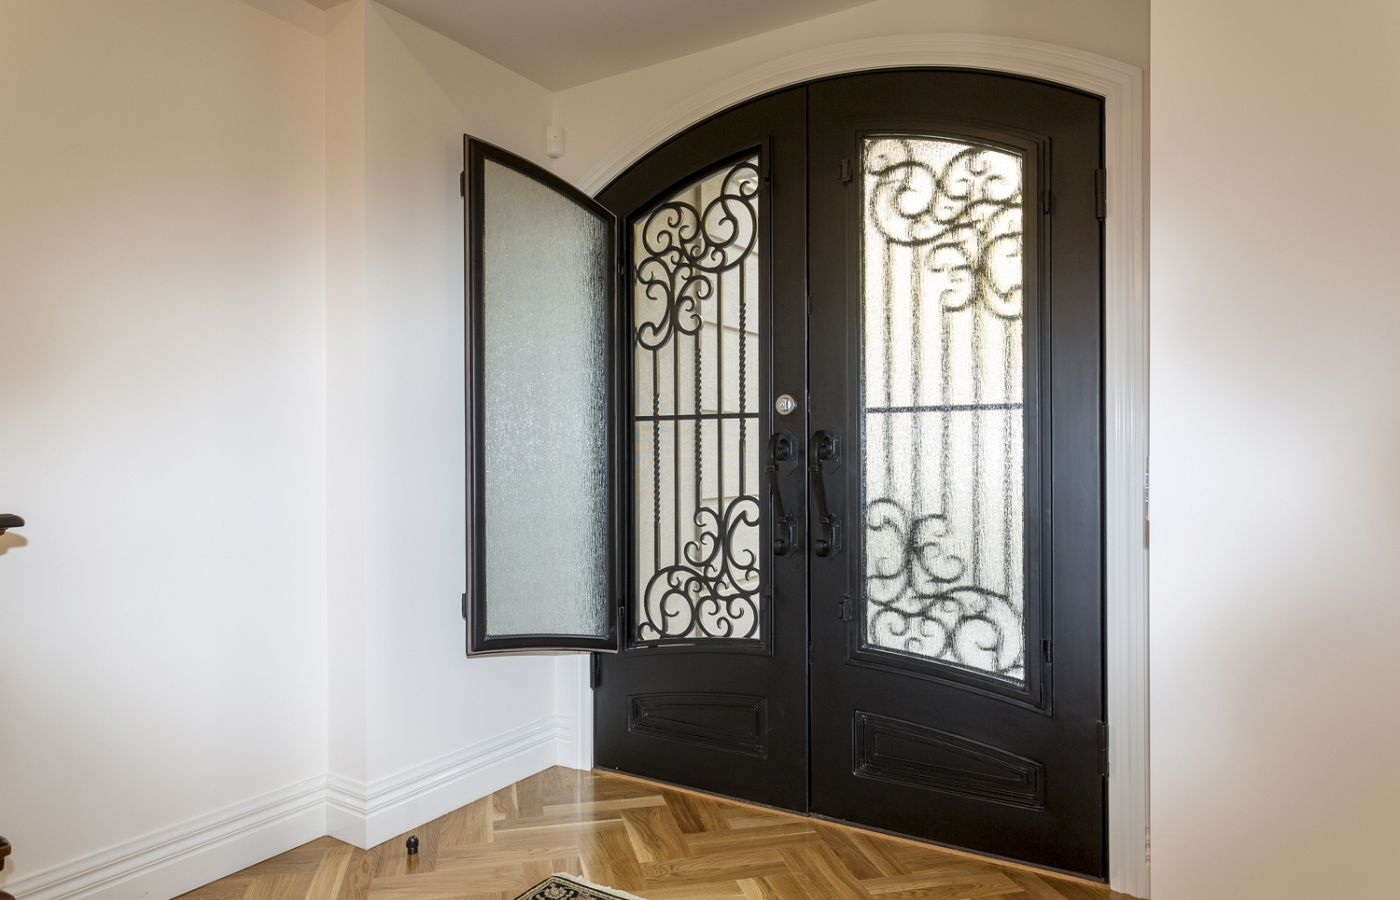 Featured Adoore Wrought Iron Door. source: comdainhomes.